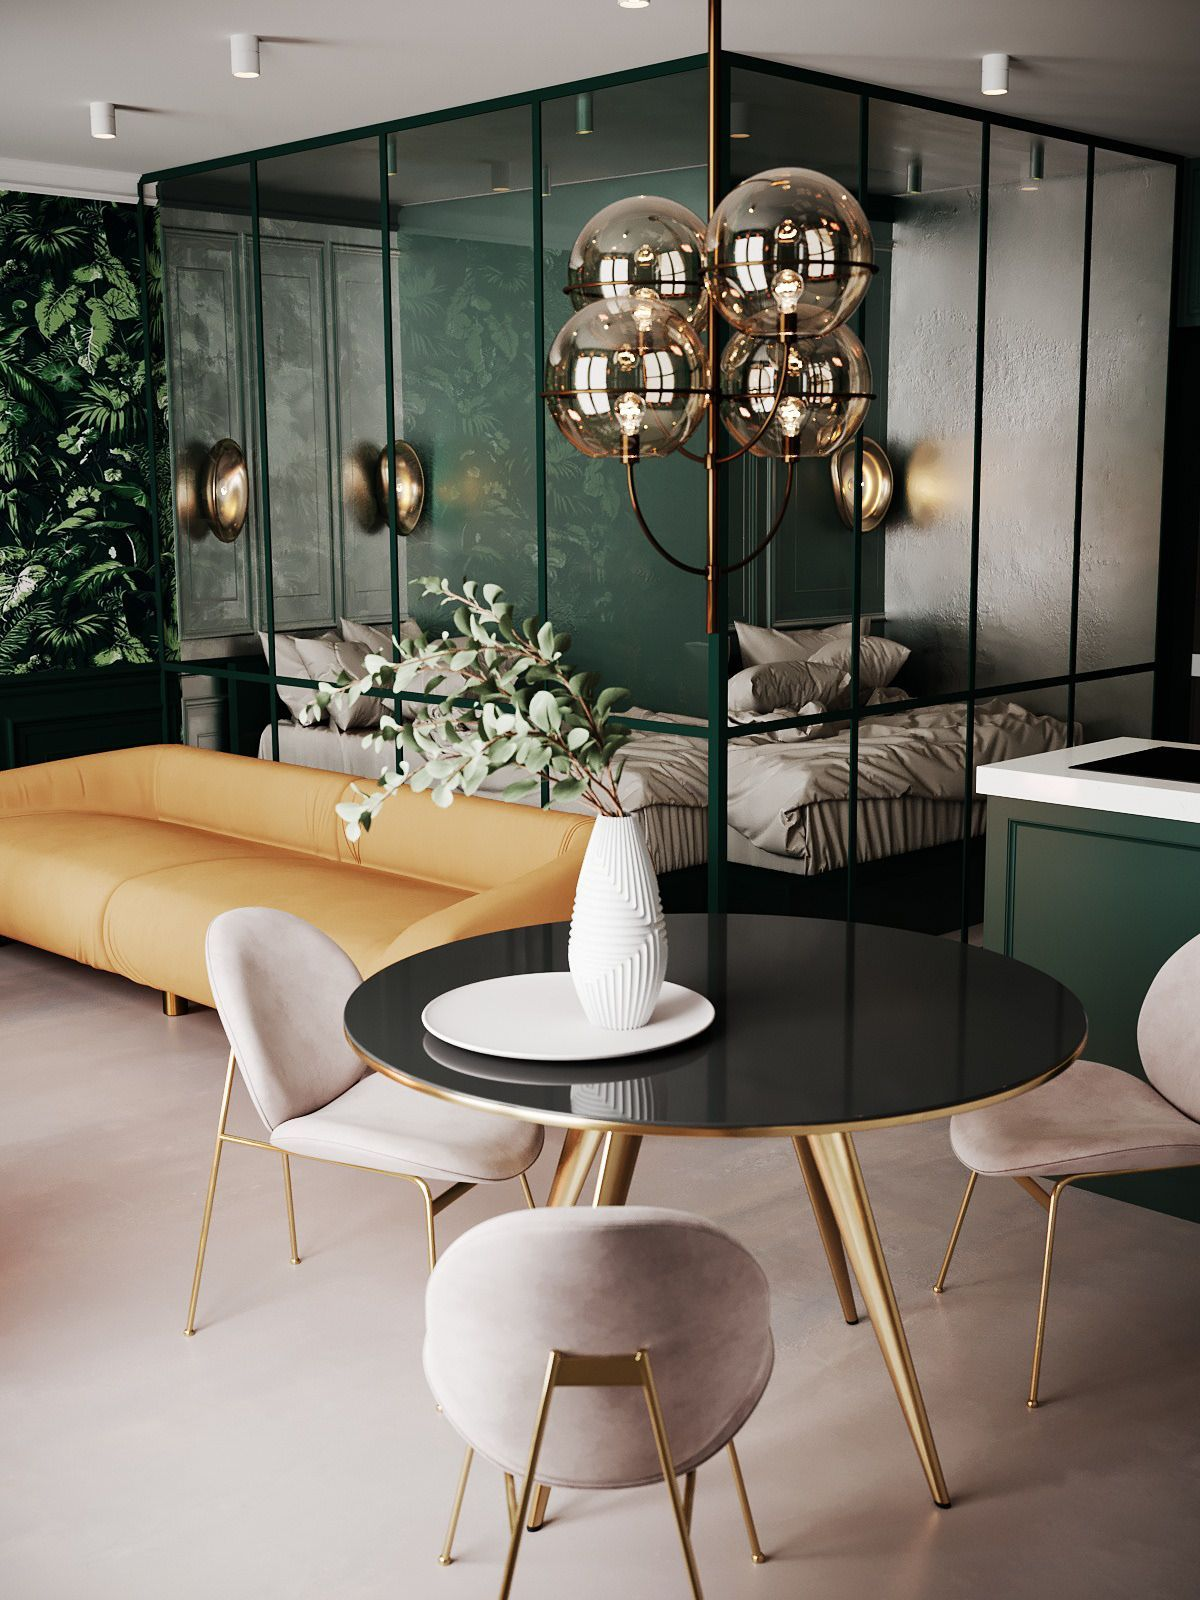 Modern Home Interiors And Design Ideas From The Best In Condos Penthouses And Architecture Plus The Fine Modern Houses Interior Interior Design Interior Deco